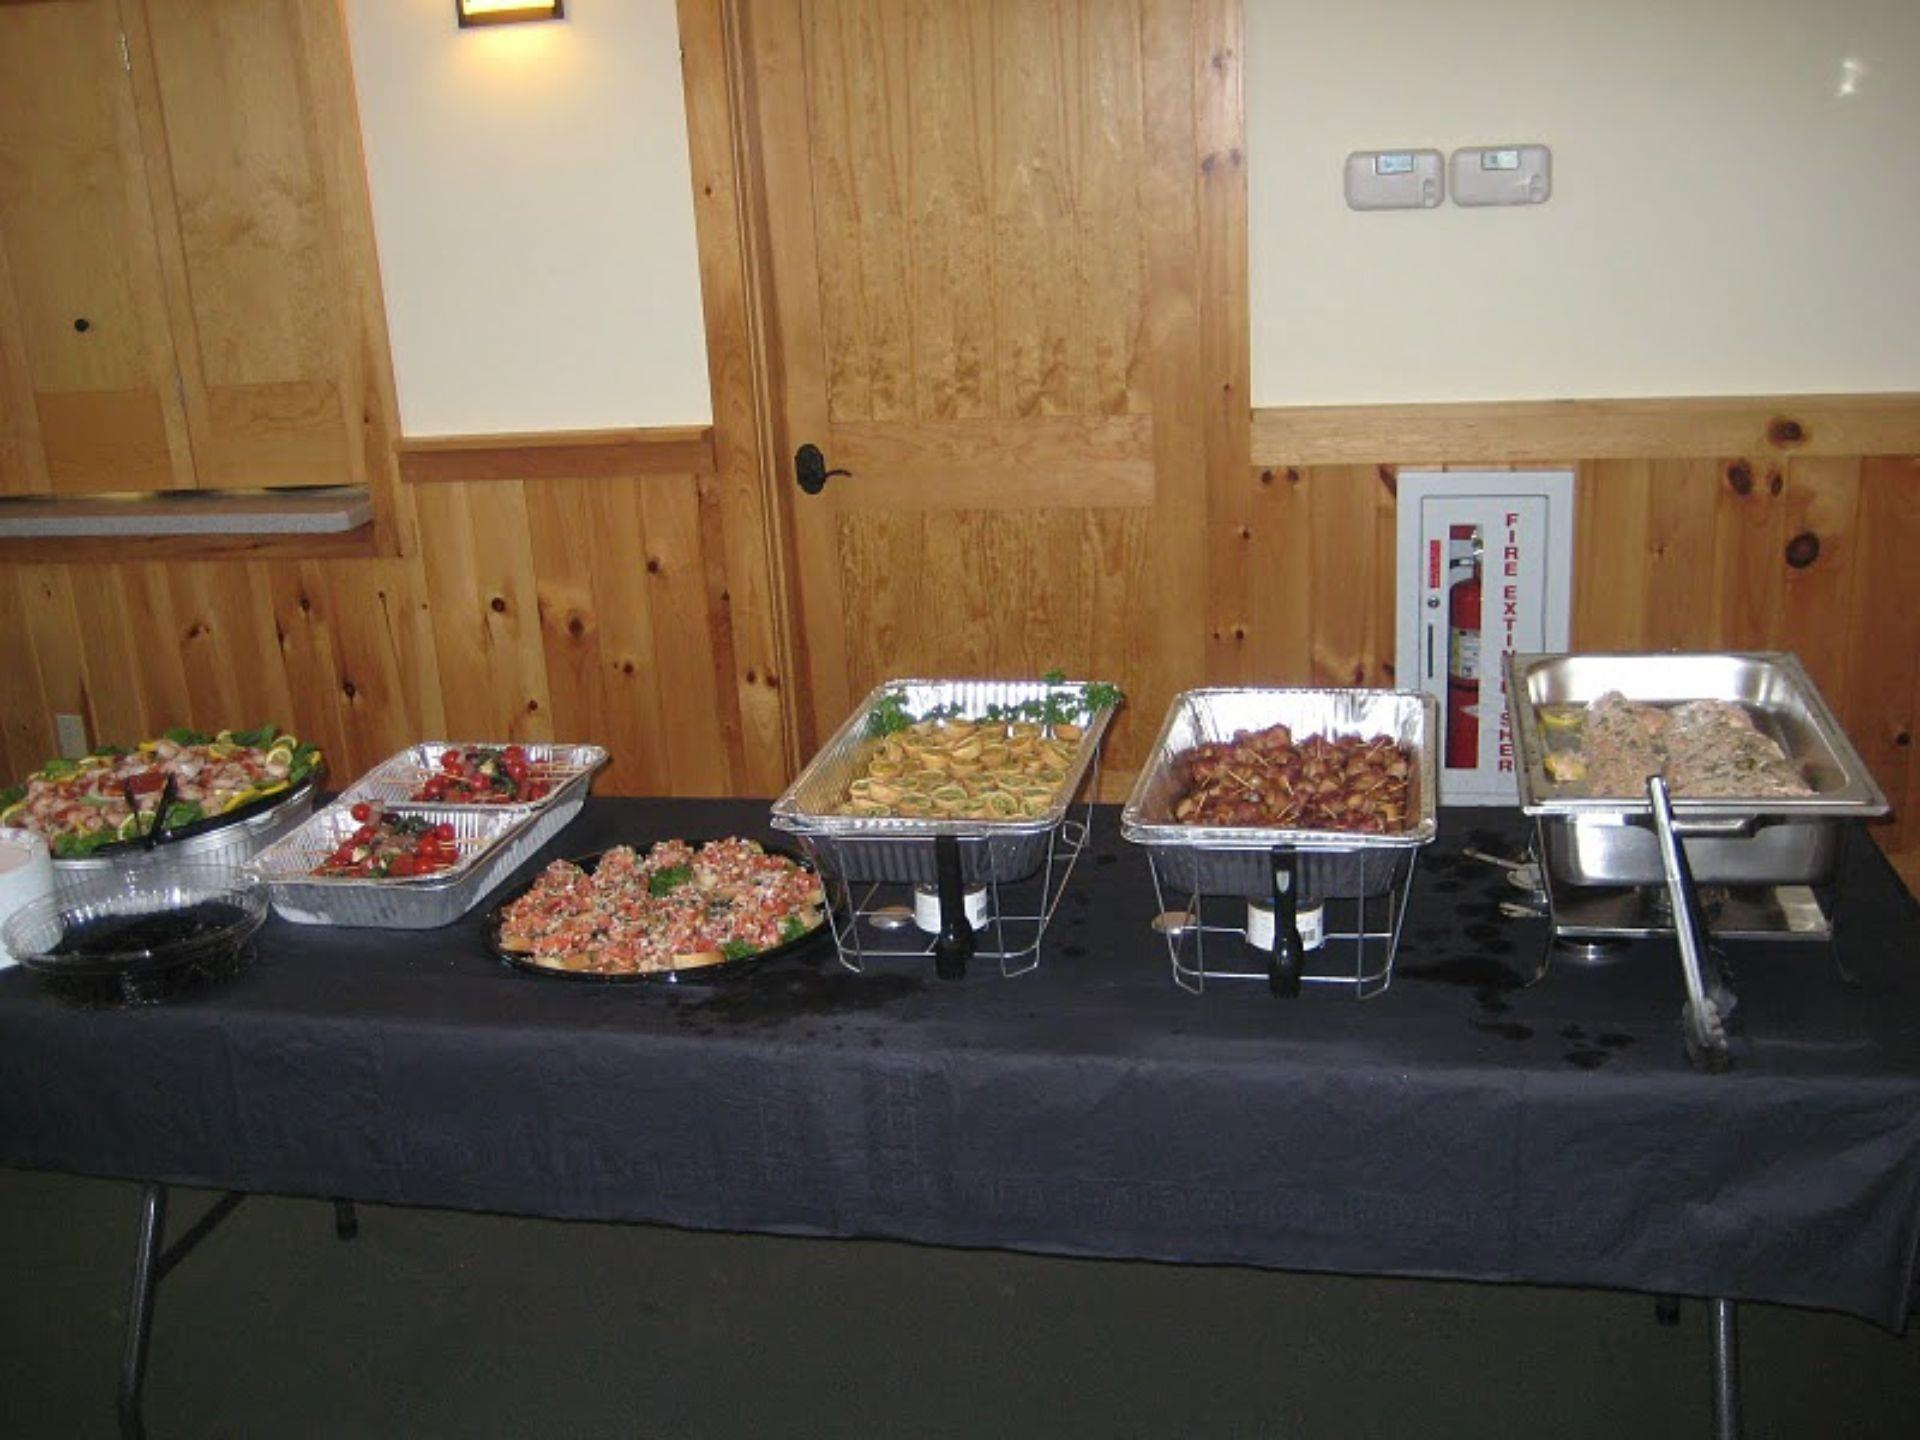 Catering display with assorted entrees